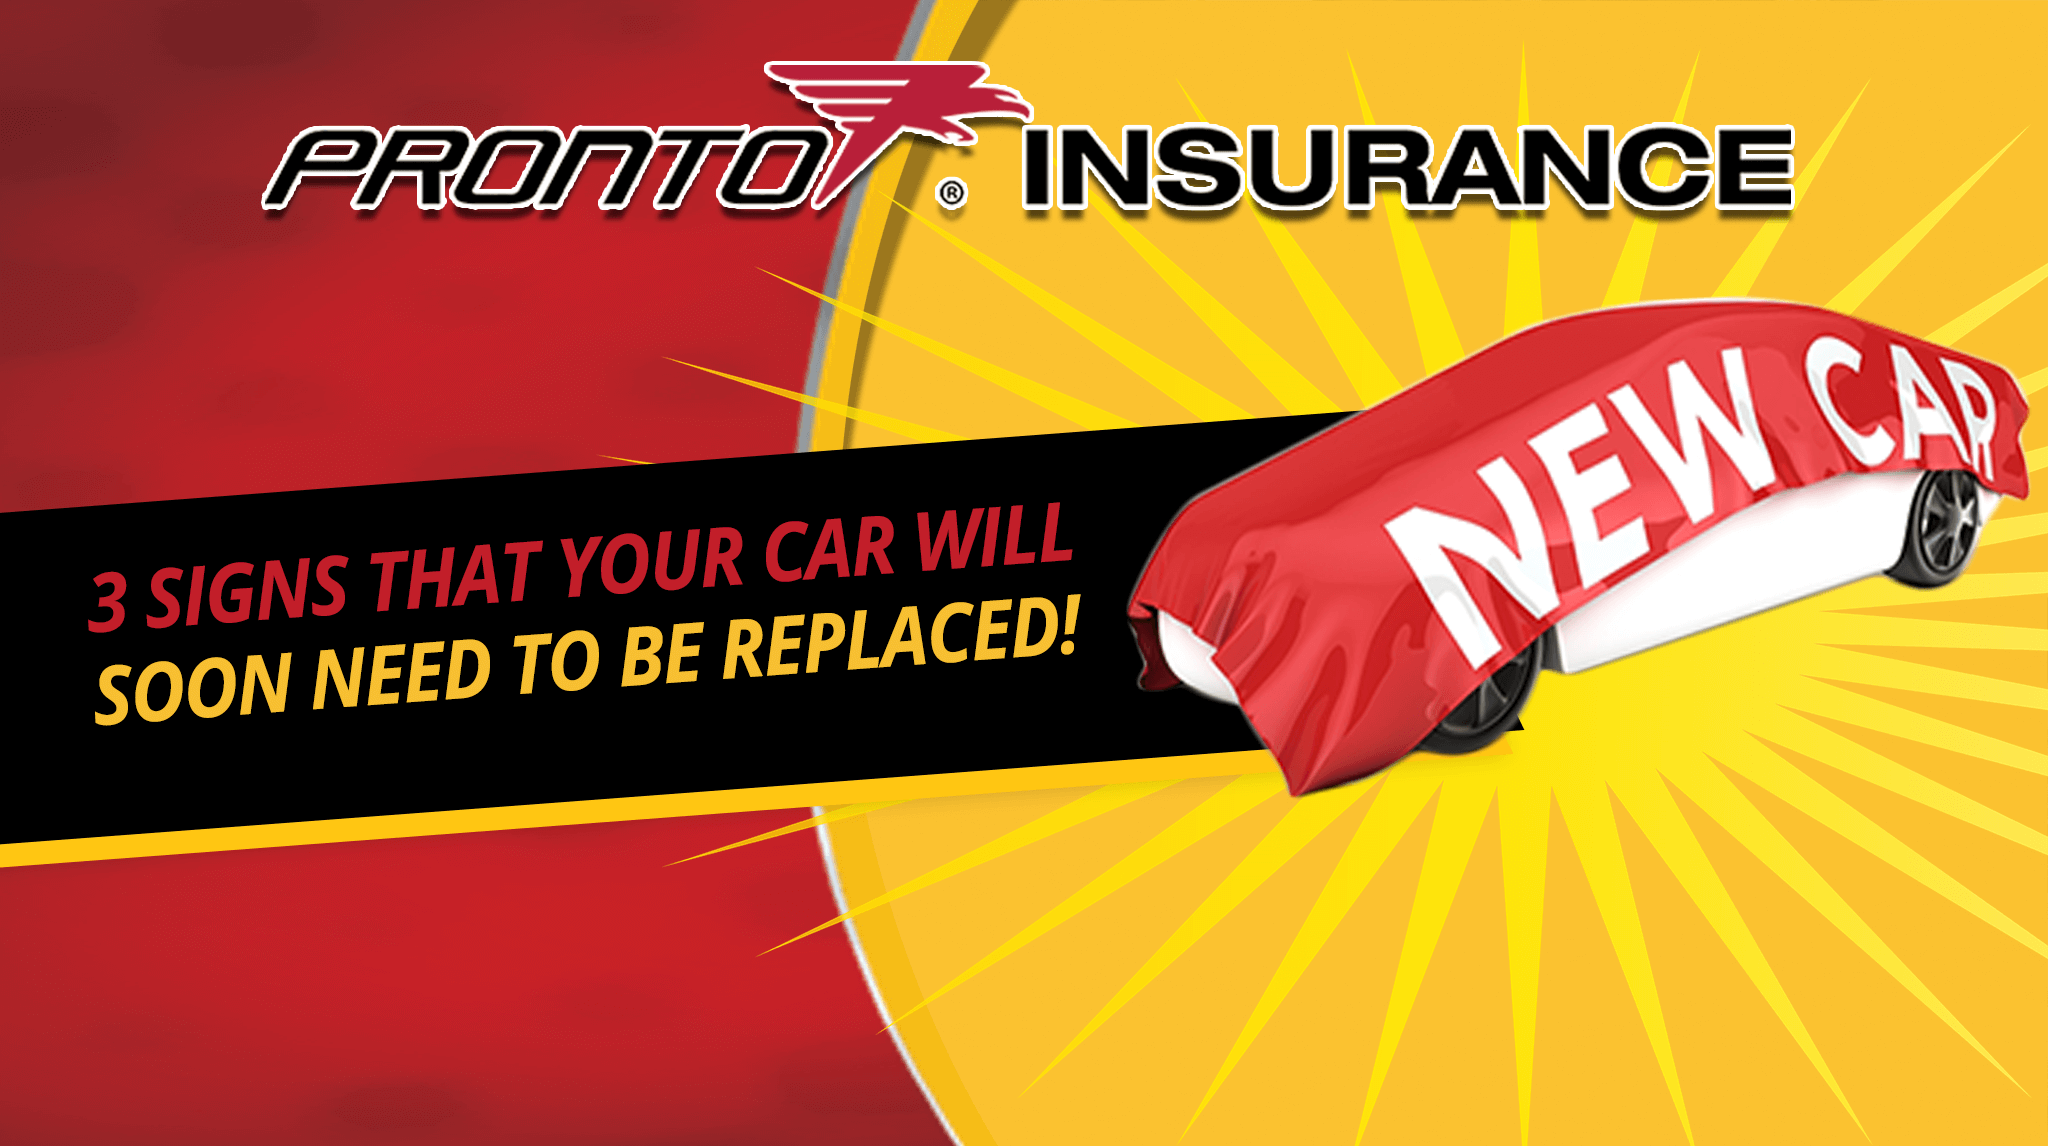 3 Signs That Your Car Will Soon Need to be Replaced!